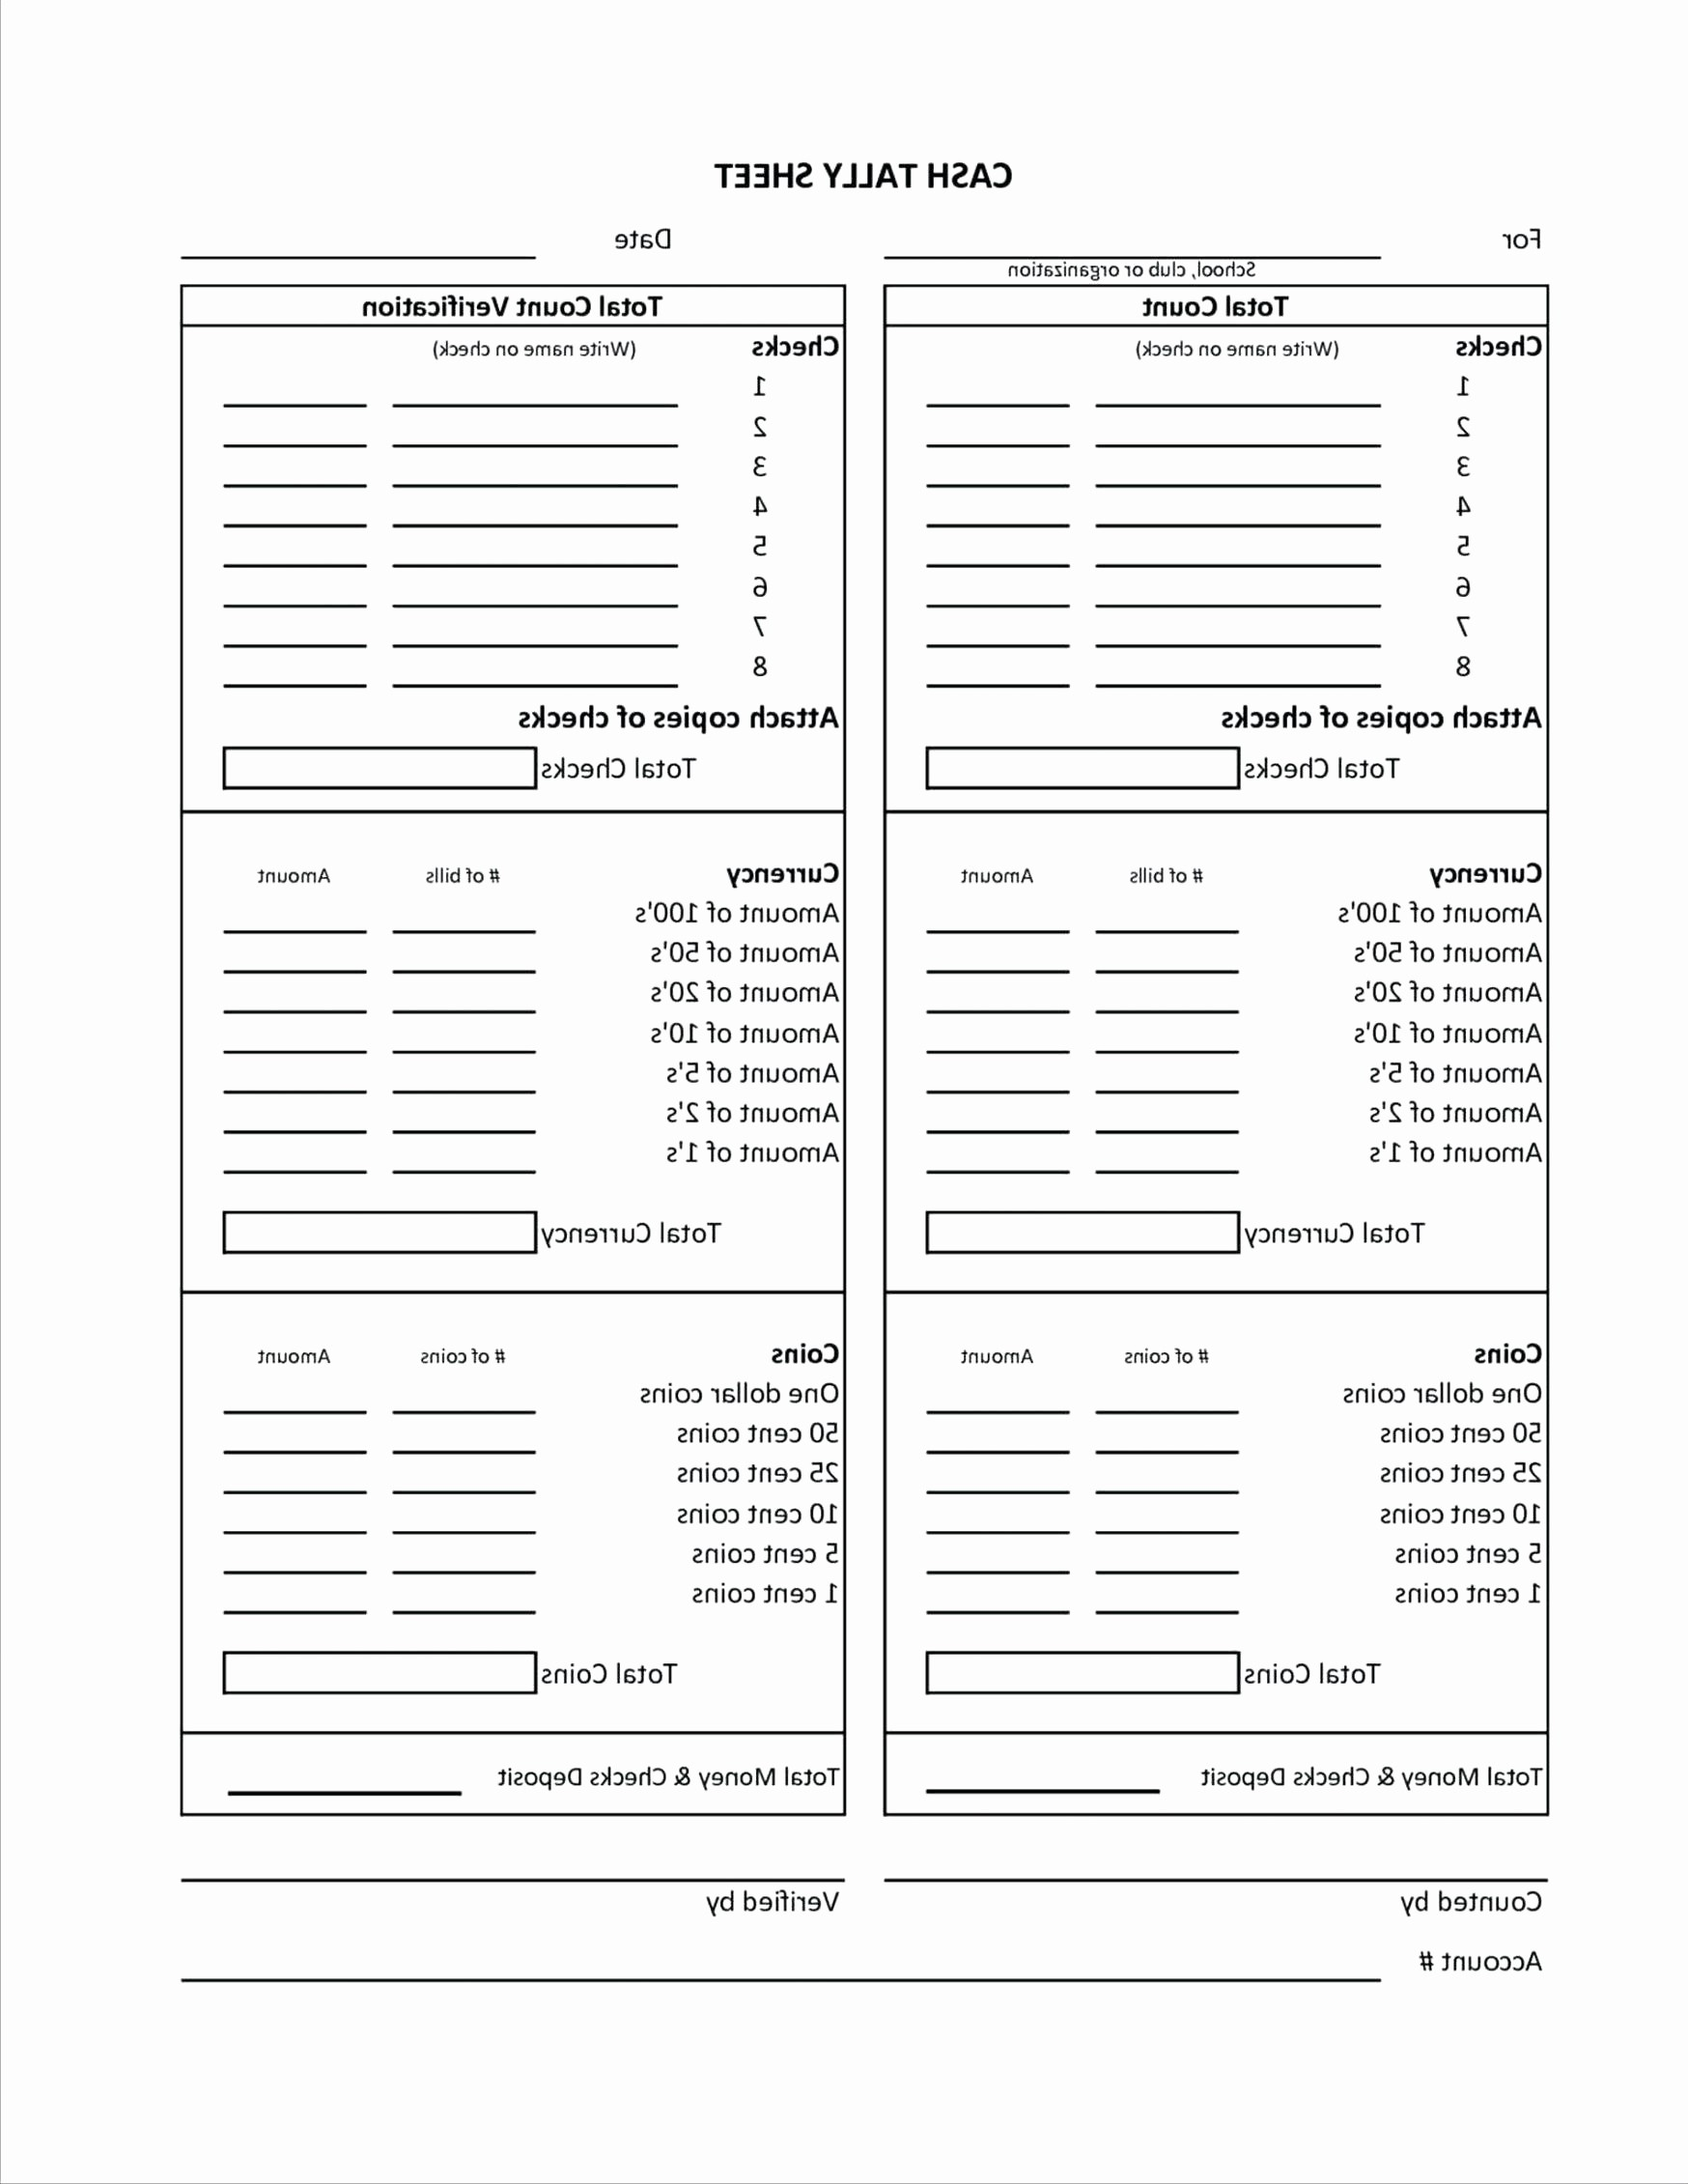 Daily Cash Report Template Excel Lovely Template Daily Cash Sheet Template Excel